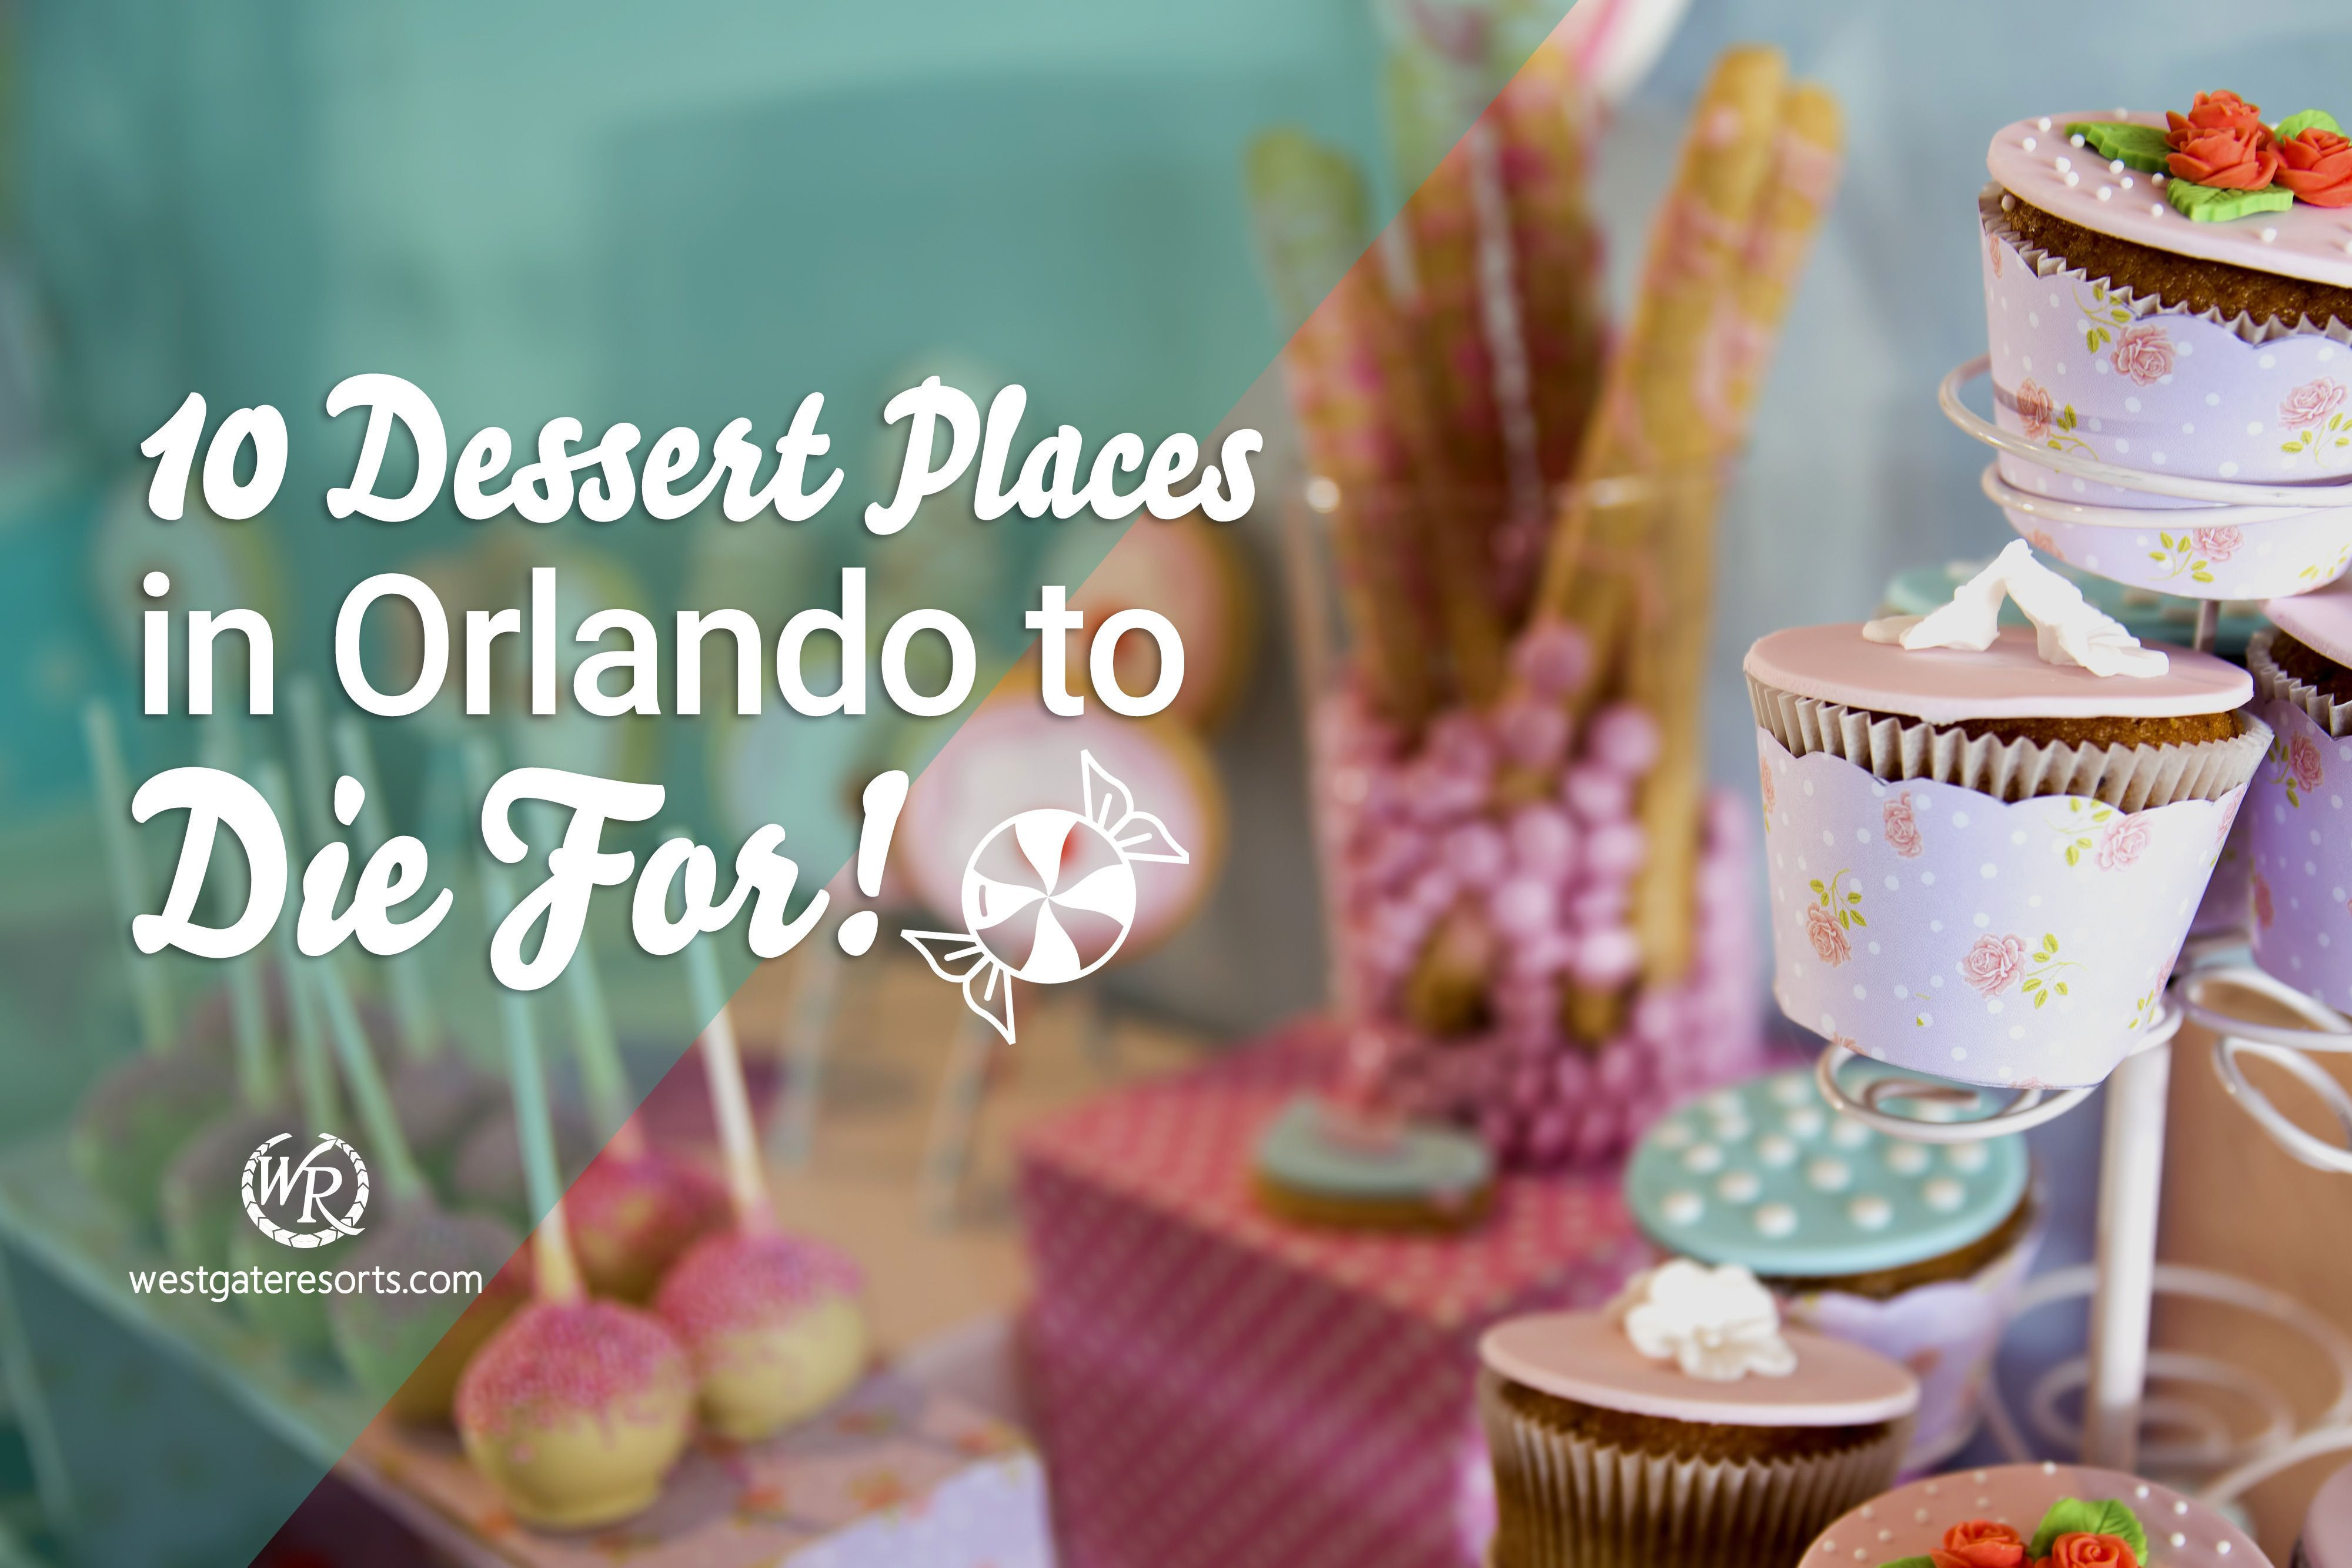 10 Dessert Places in Orlando to Die For!